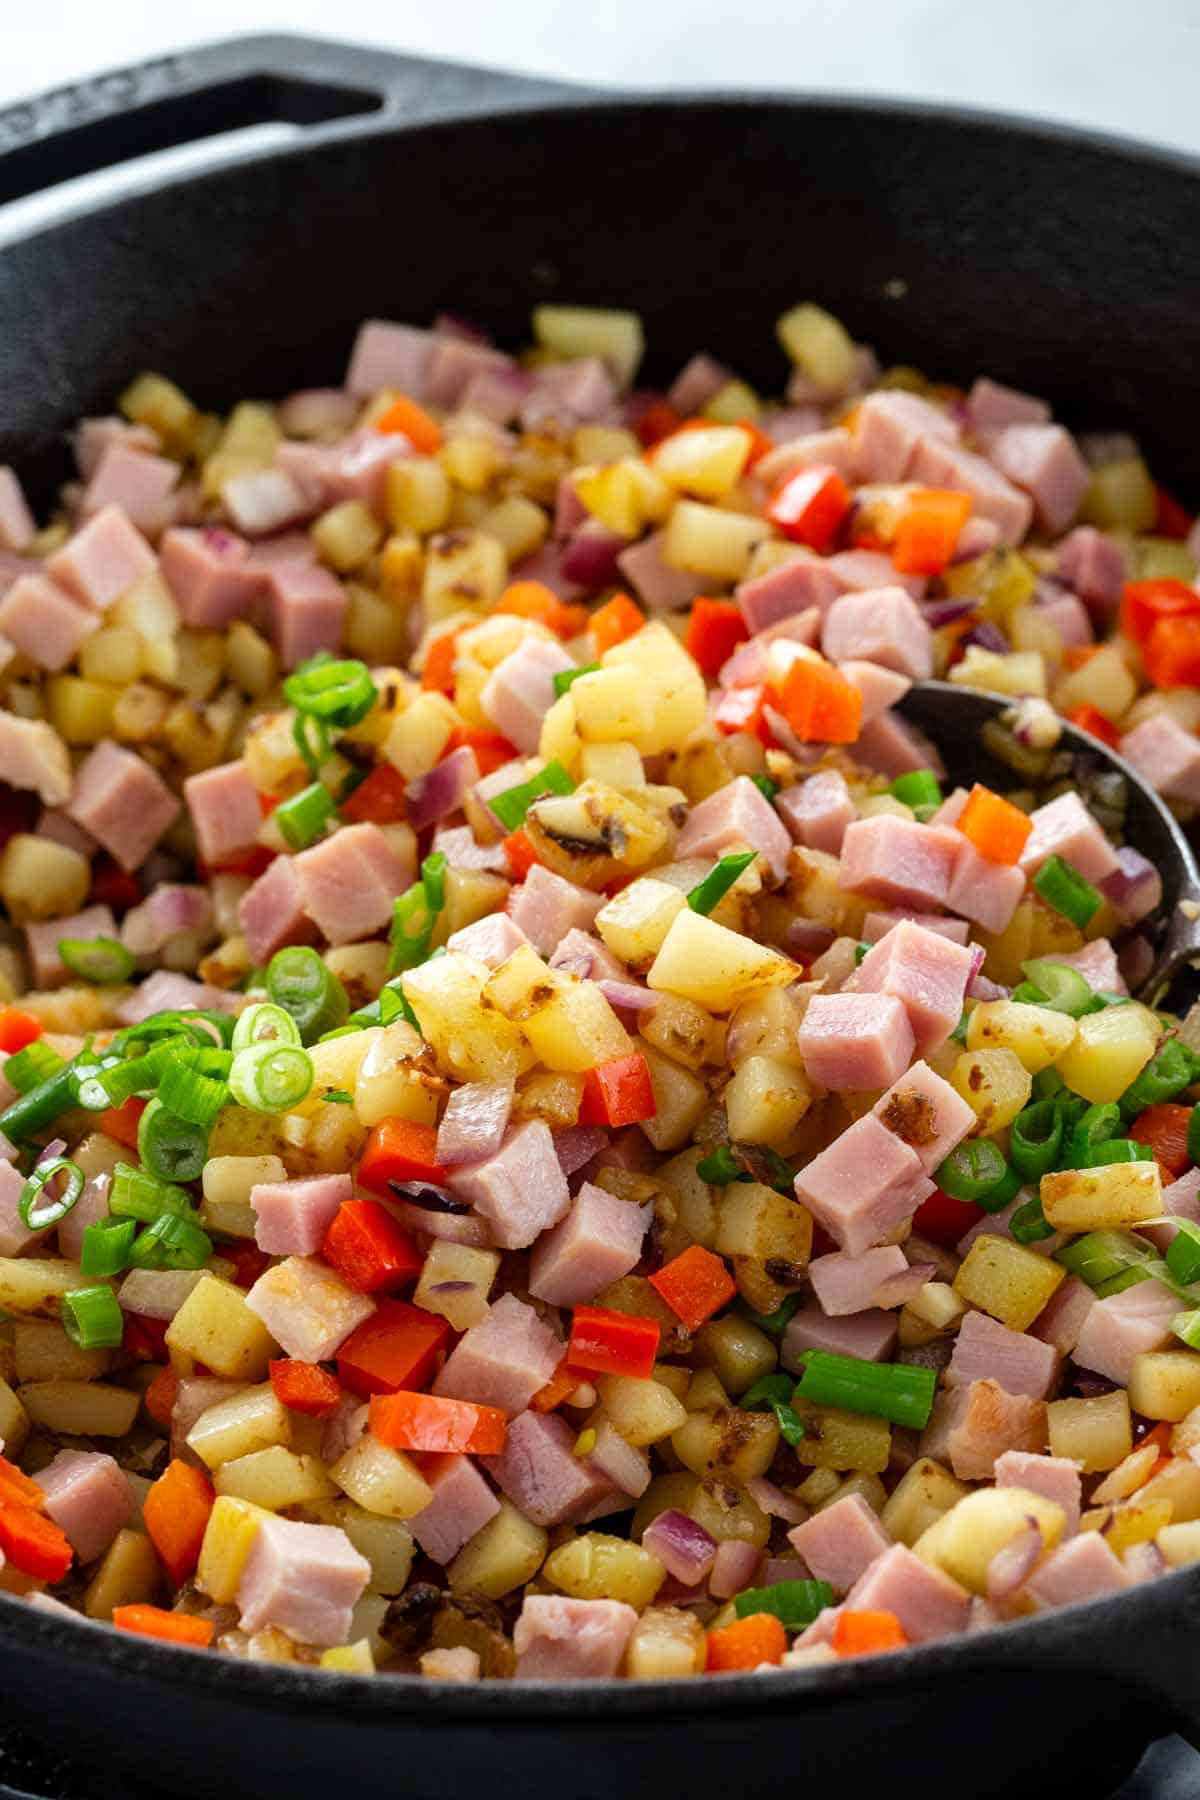 sautéing cubes of ham, potatoes, and peppers in a cast iron skillet